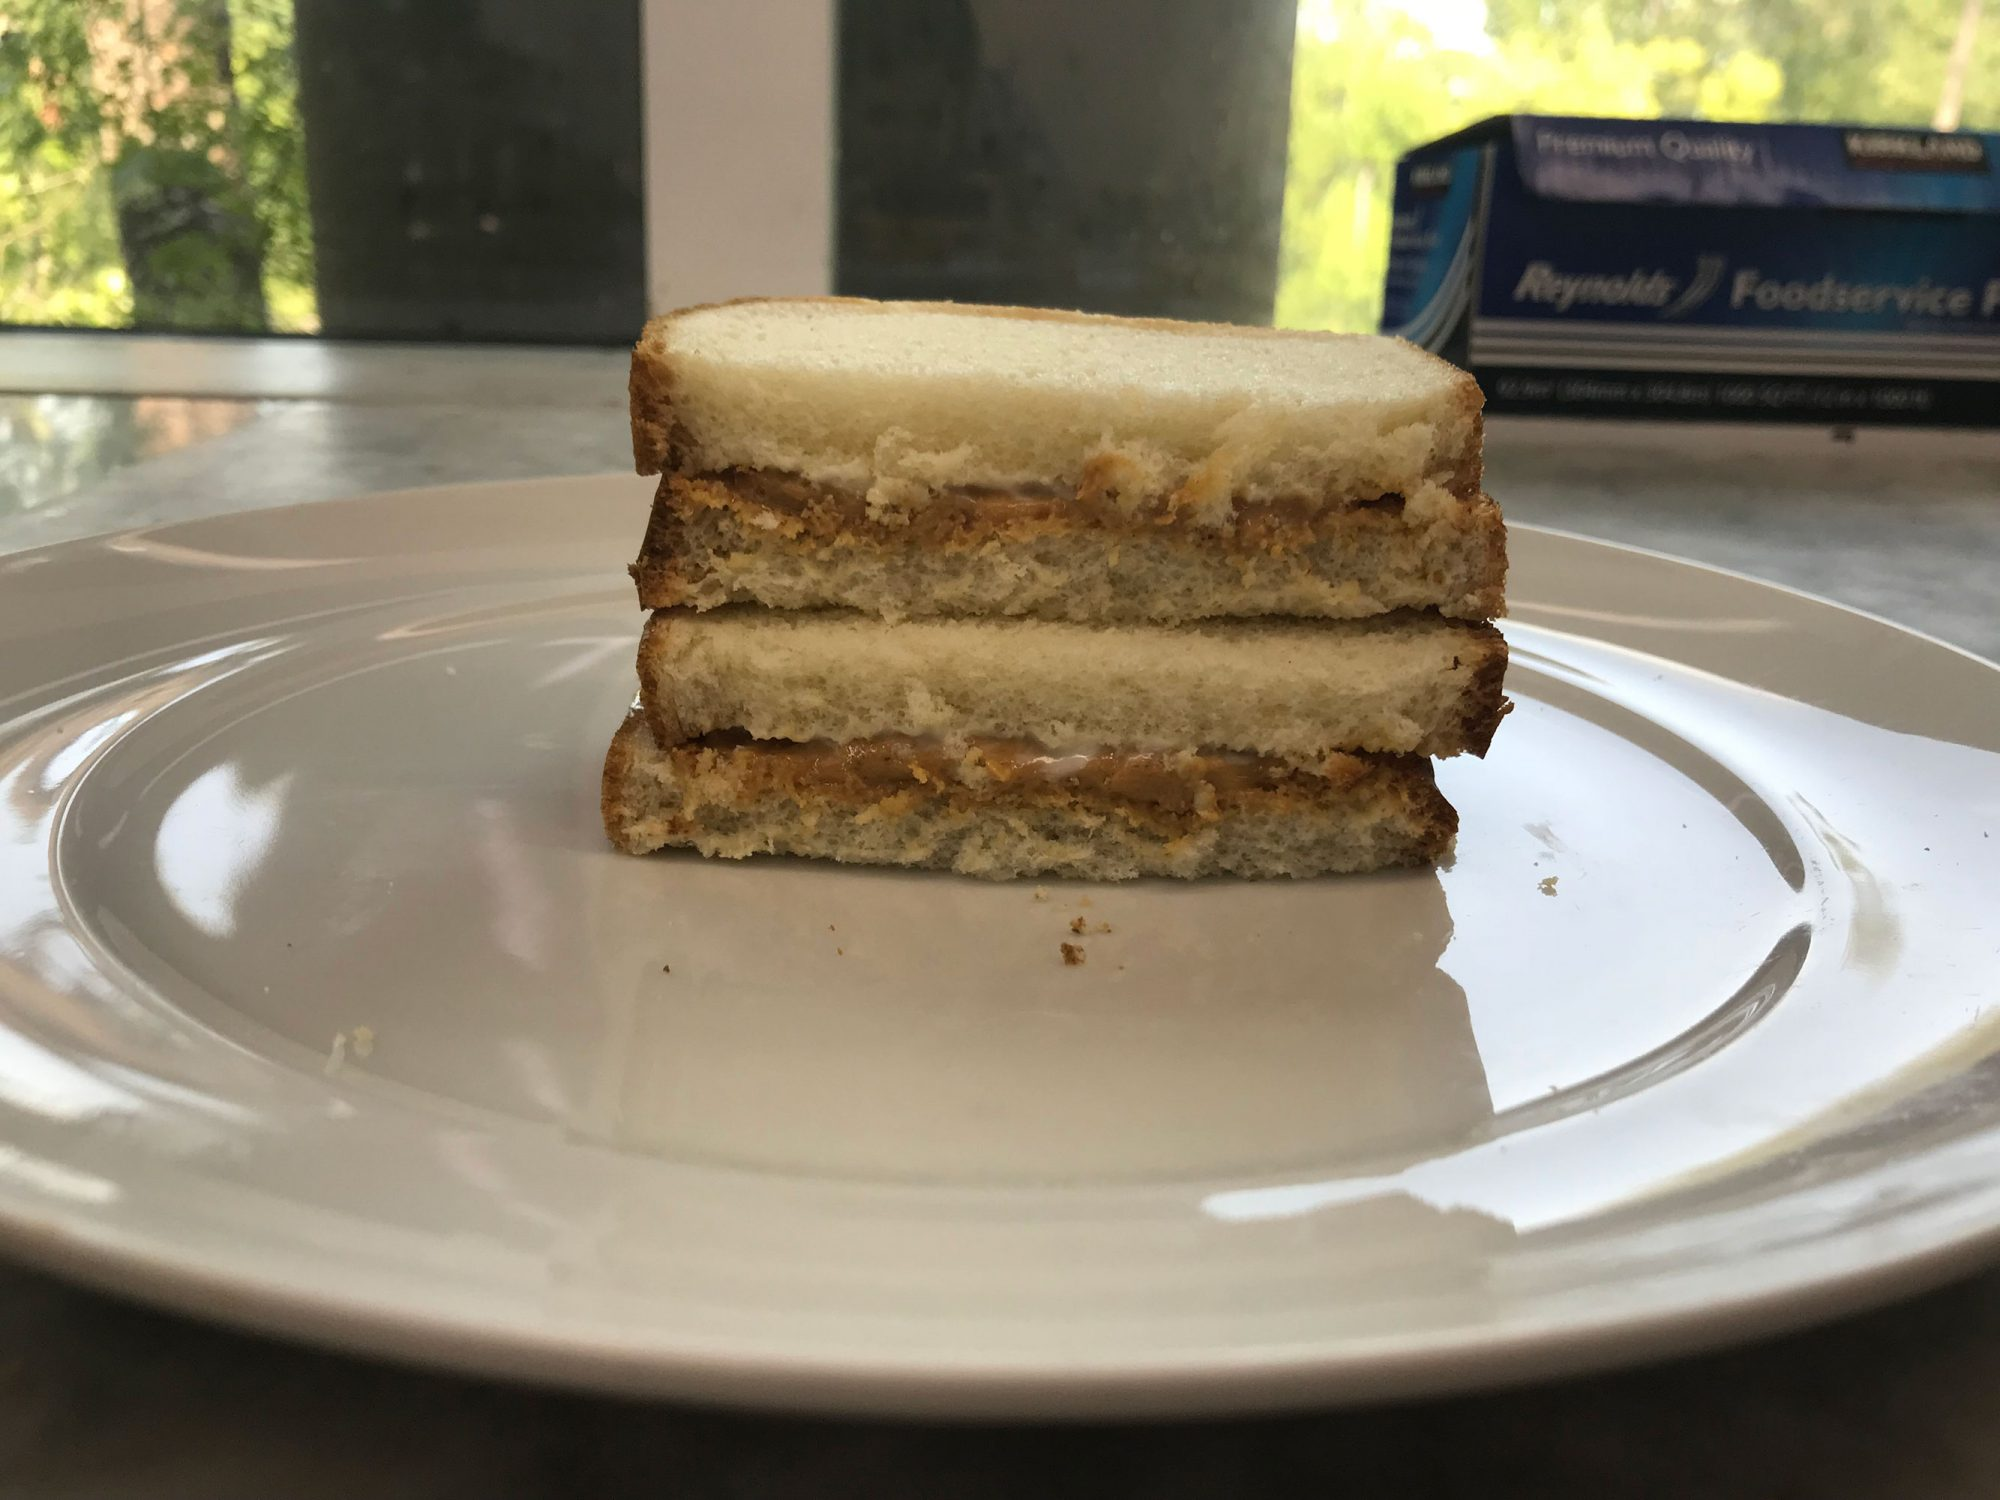 peanut butter and mayonnaise sandwich